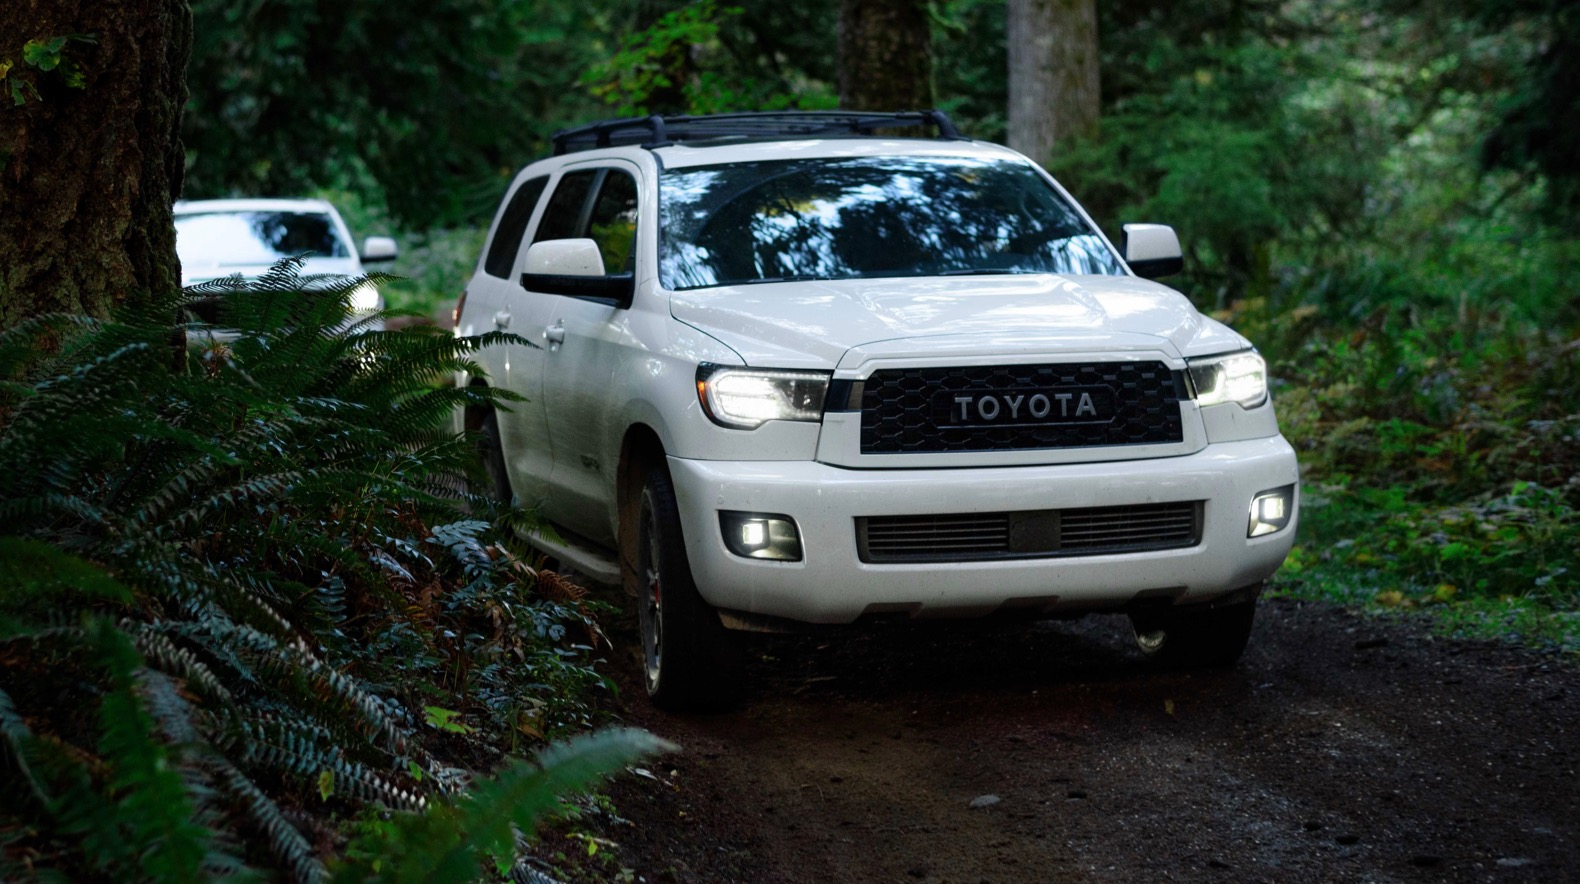 2020 Toyota Sequoia Trd Pro Joins The Off Roading Family The Torque Report